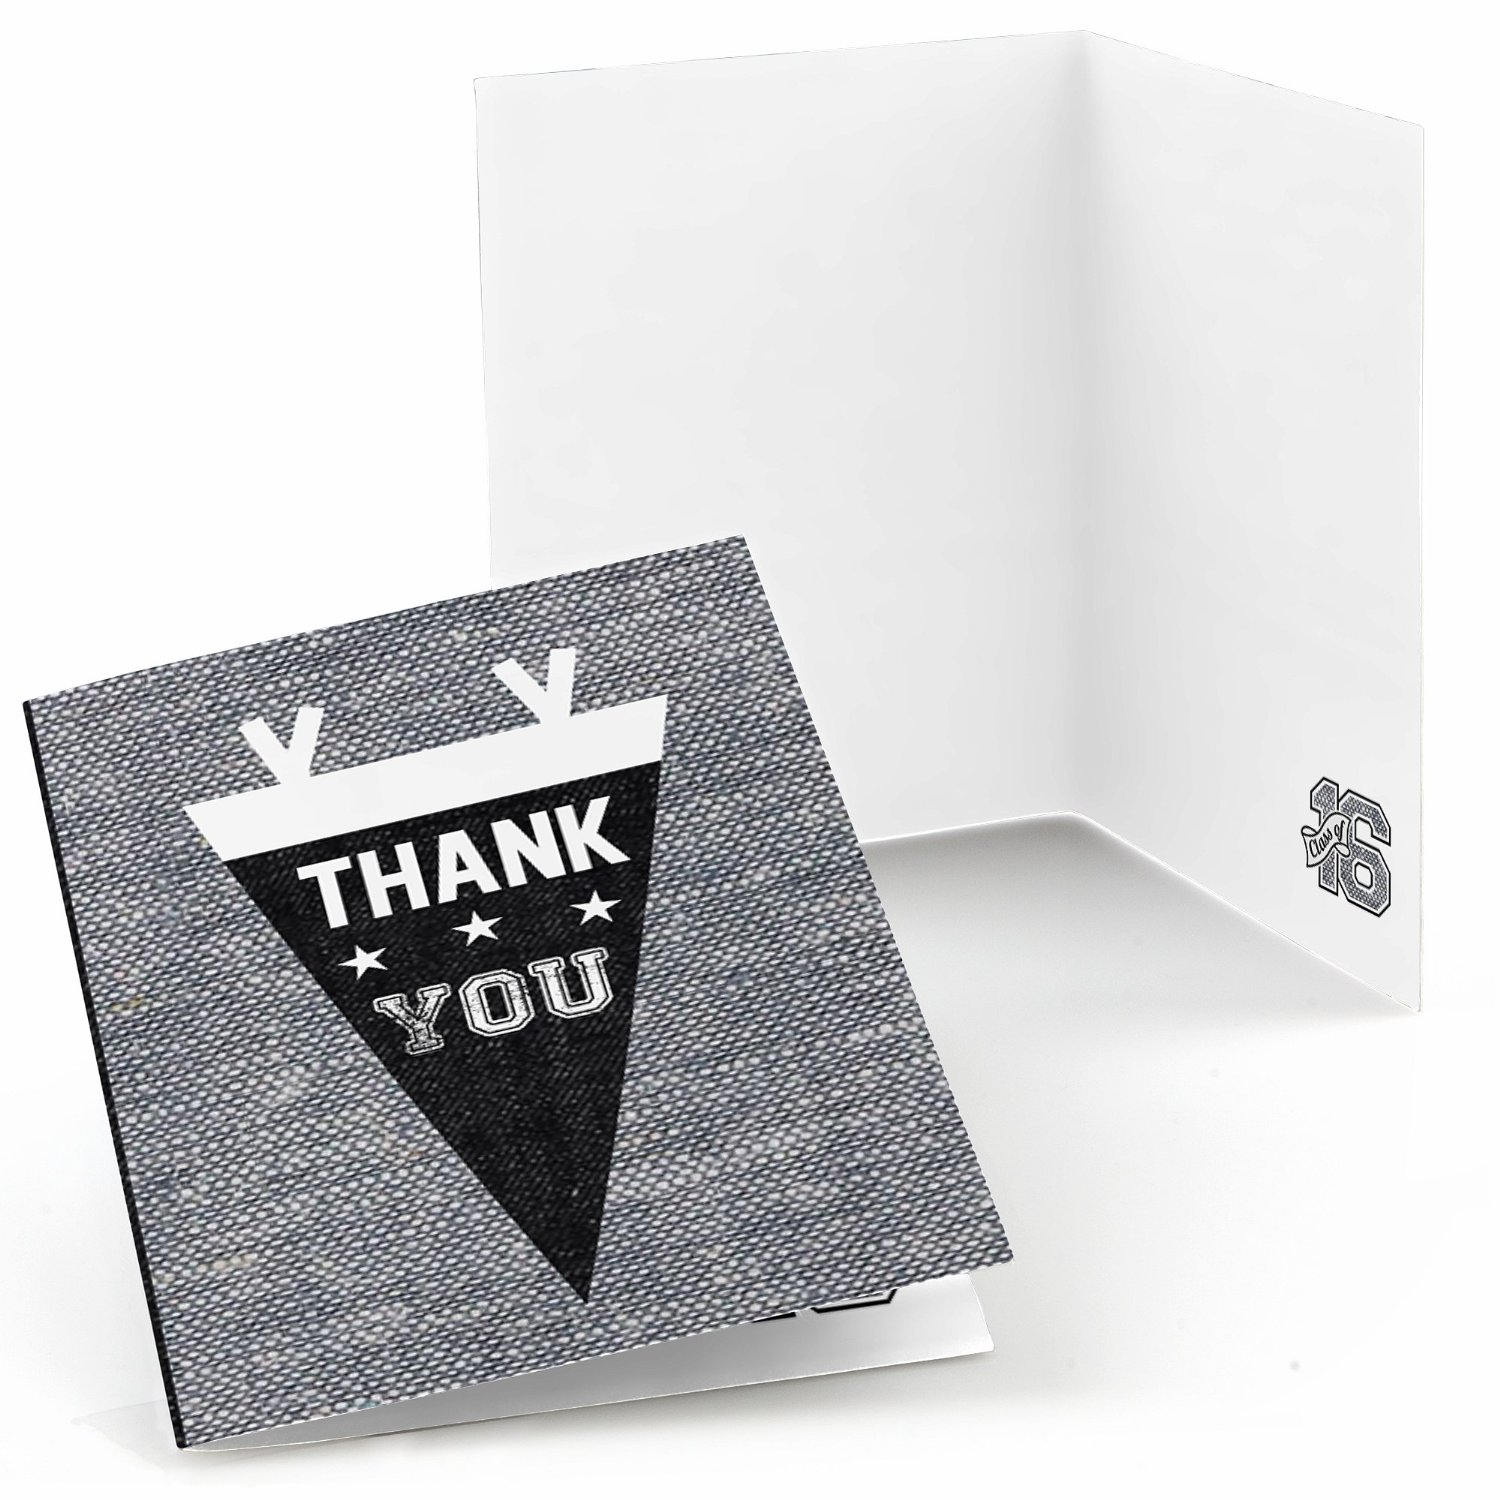 All Star Grad - Graduation Party Thank You Cards (8 count)